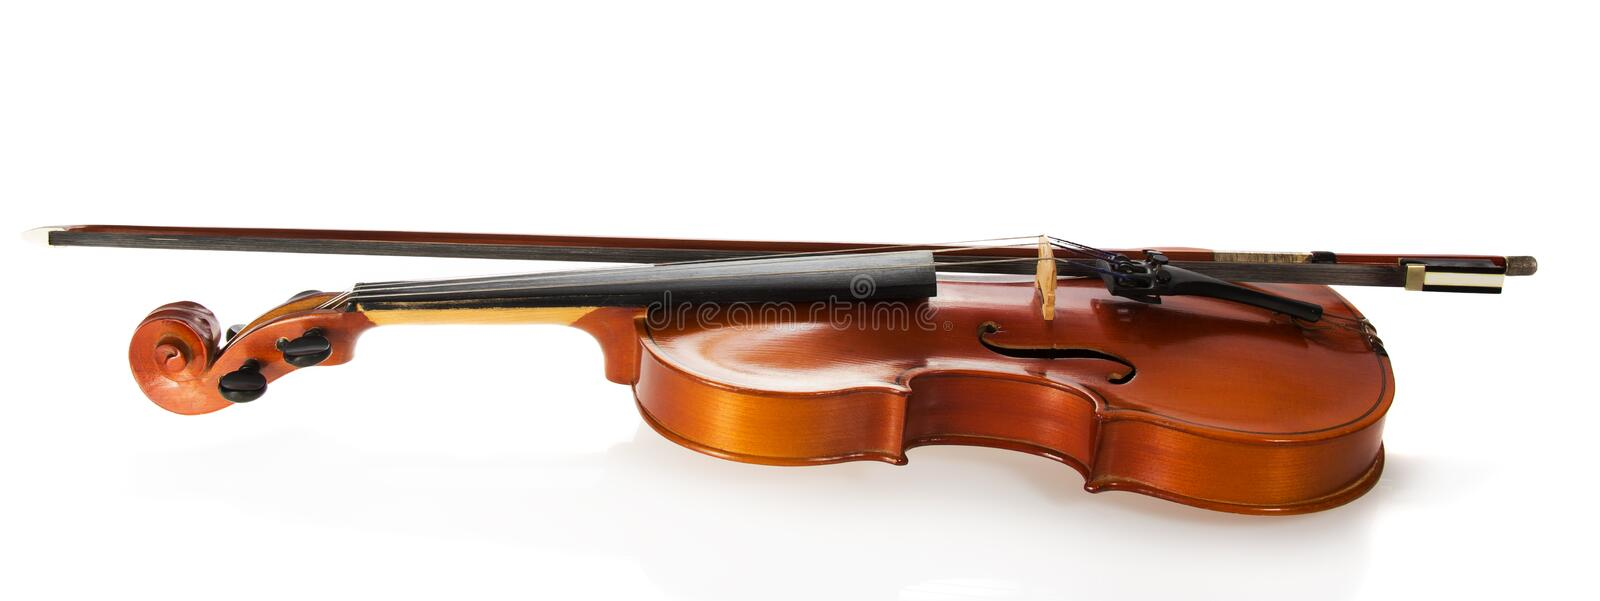 Violin and fiddlestick. Isolated on white royalty free stock images